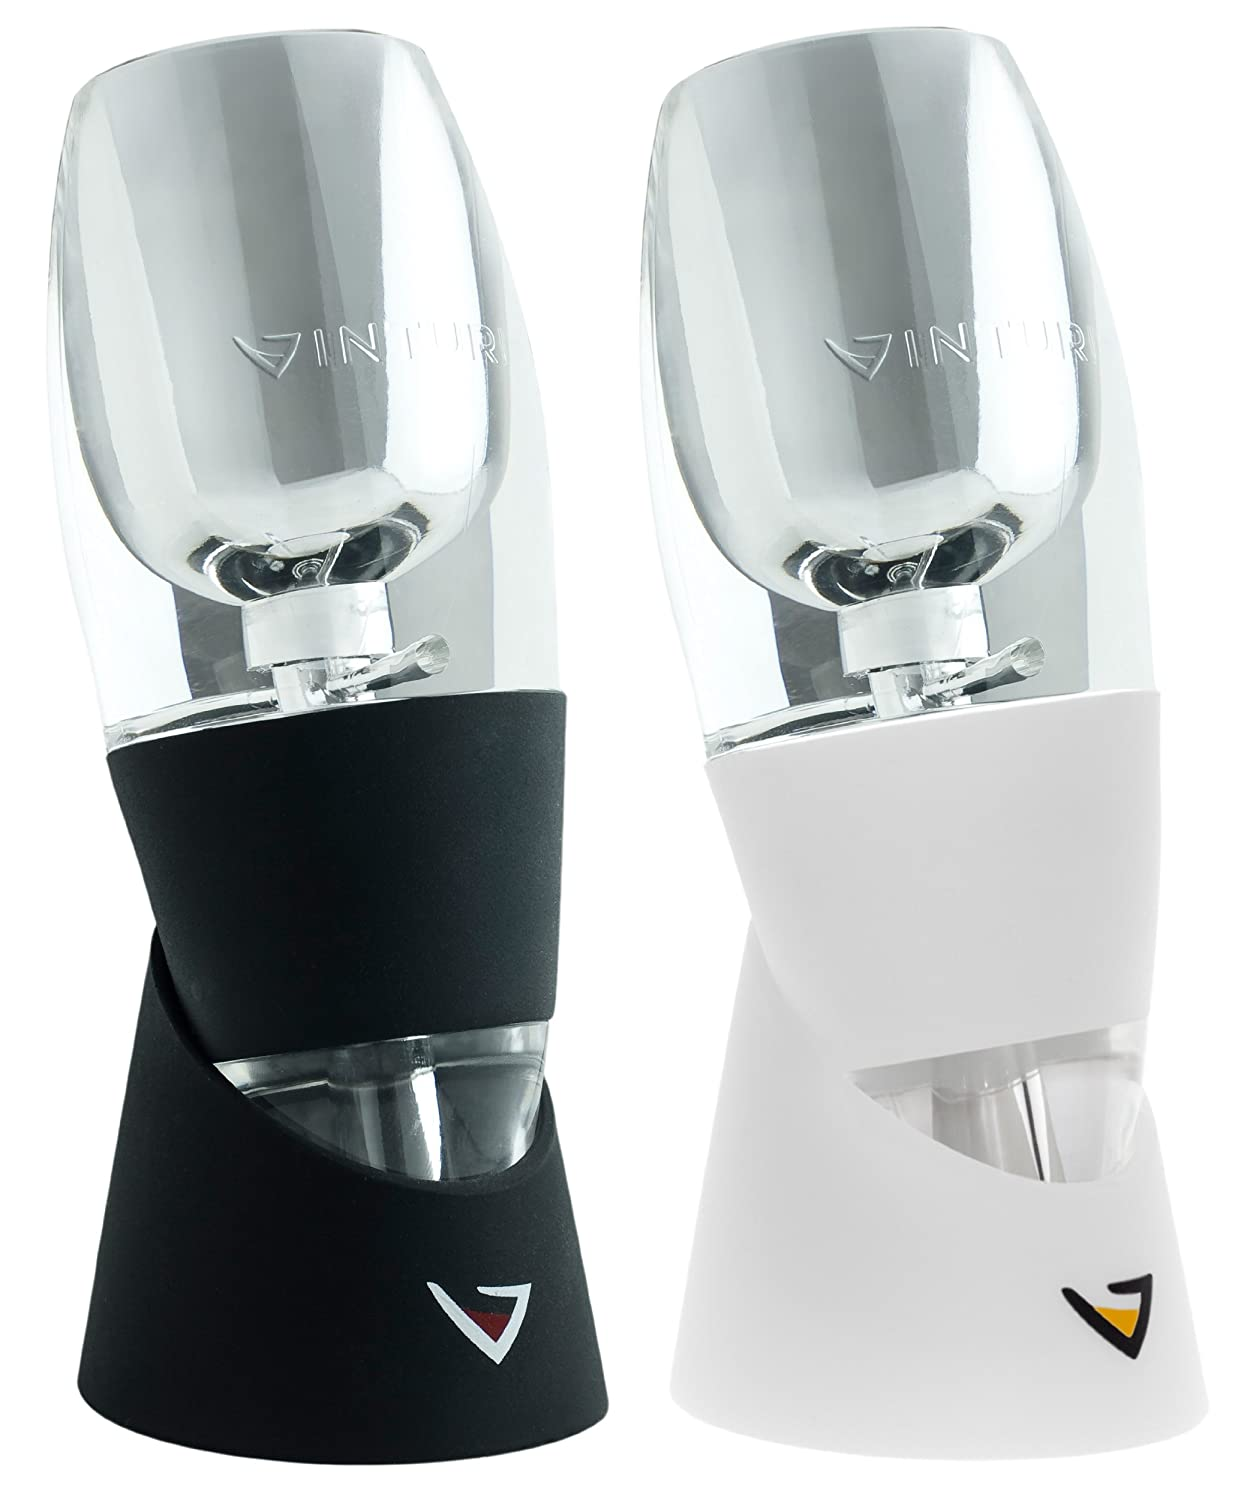 Vinturi V5000 Essential Wine Aerators for Red and White Wine, 2-set